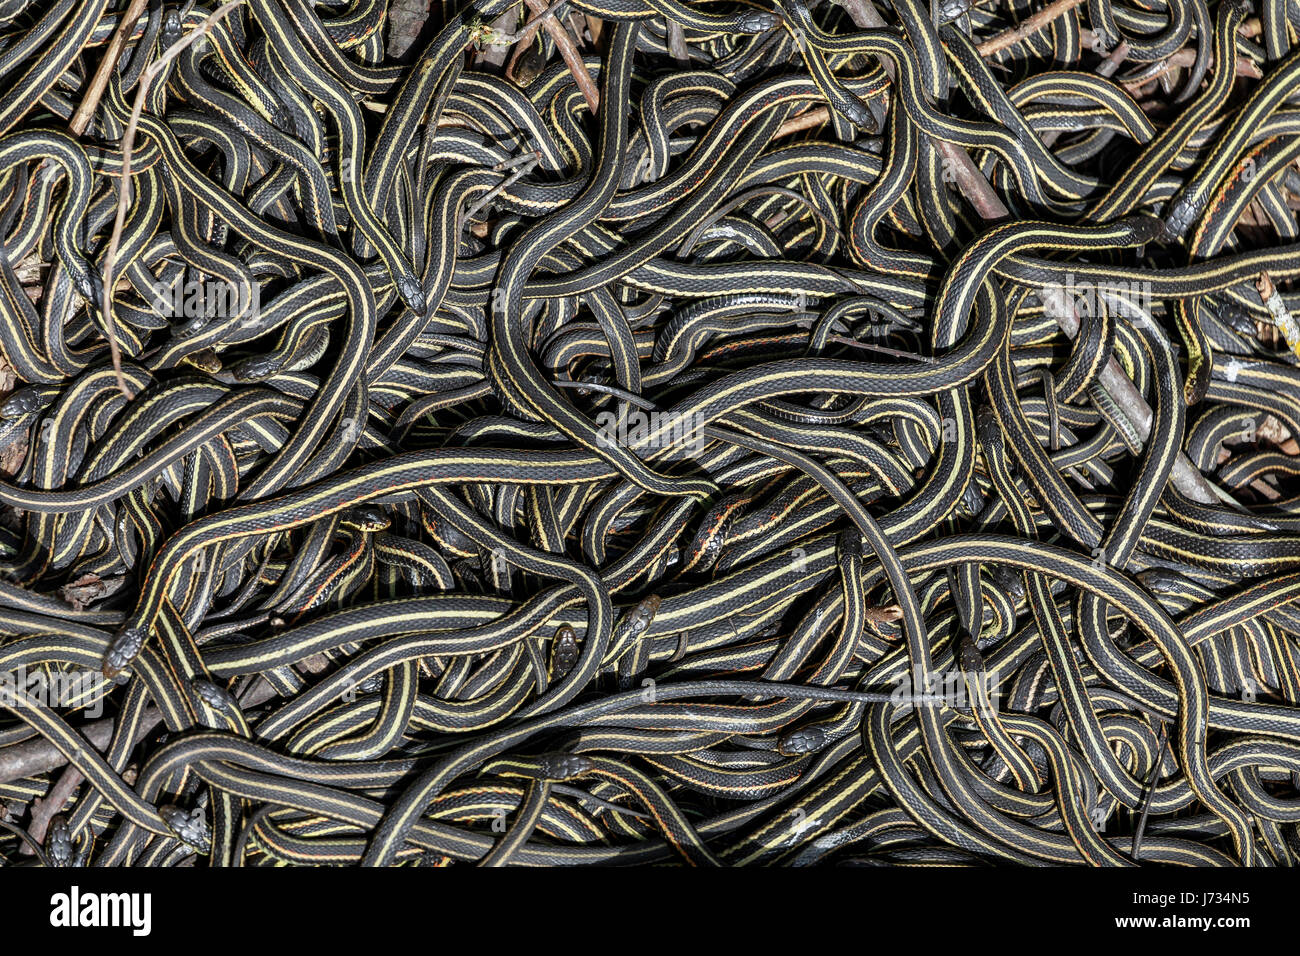 Red-sided Garter Snakes gathered in annual mating ritual in the Narcisse Snake Dens, Narcisse, Manitoba, Canada. - Stock Image